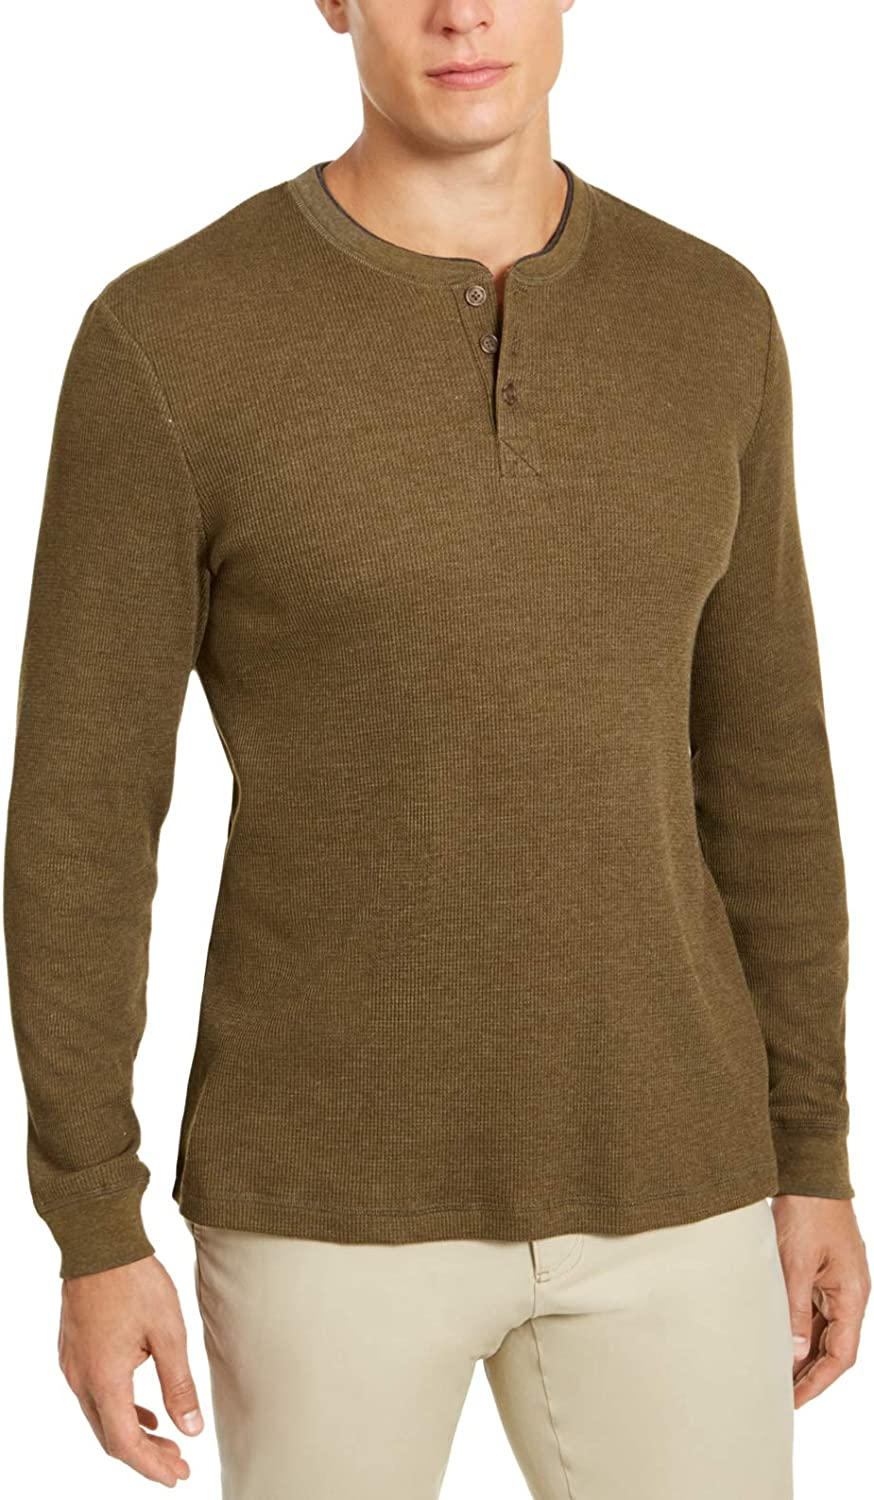 Club Room Mens Shirt Olive Waffle Knit Thermal Henley Green 2XL